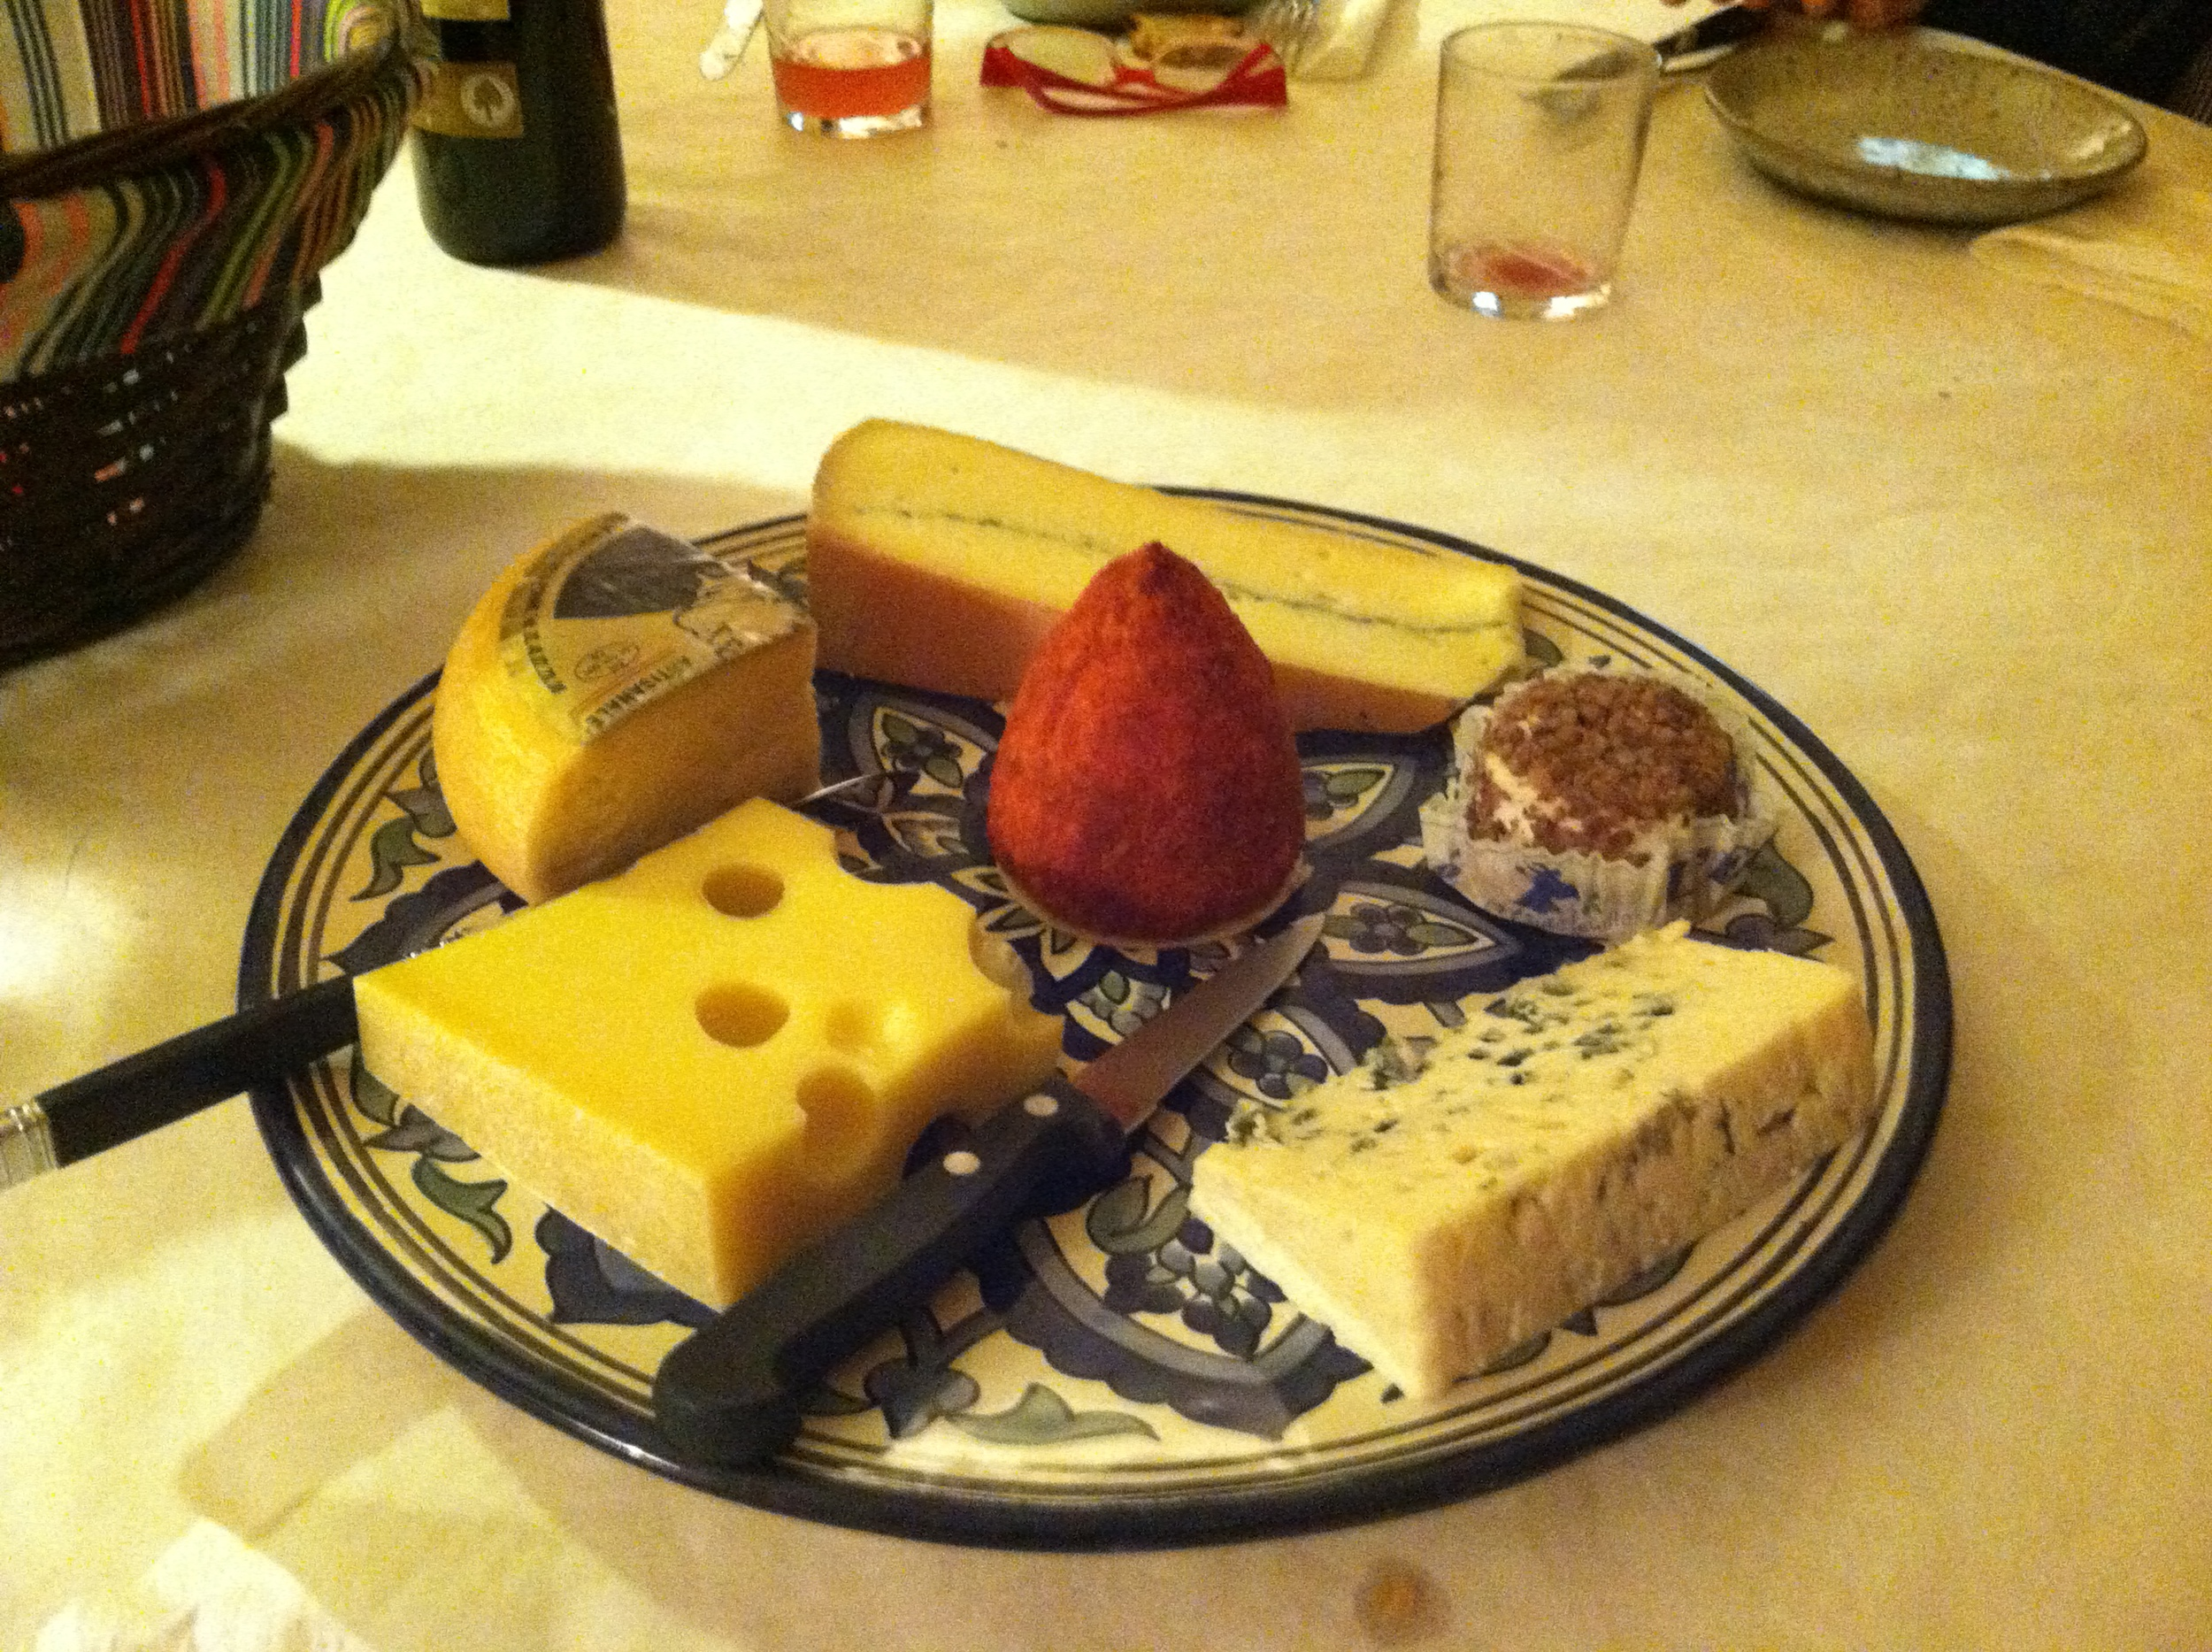 Cheese plate from the heavens